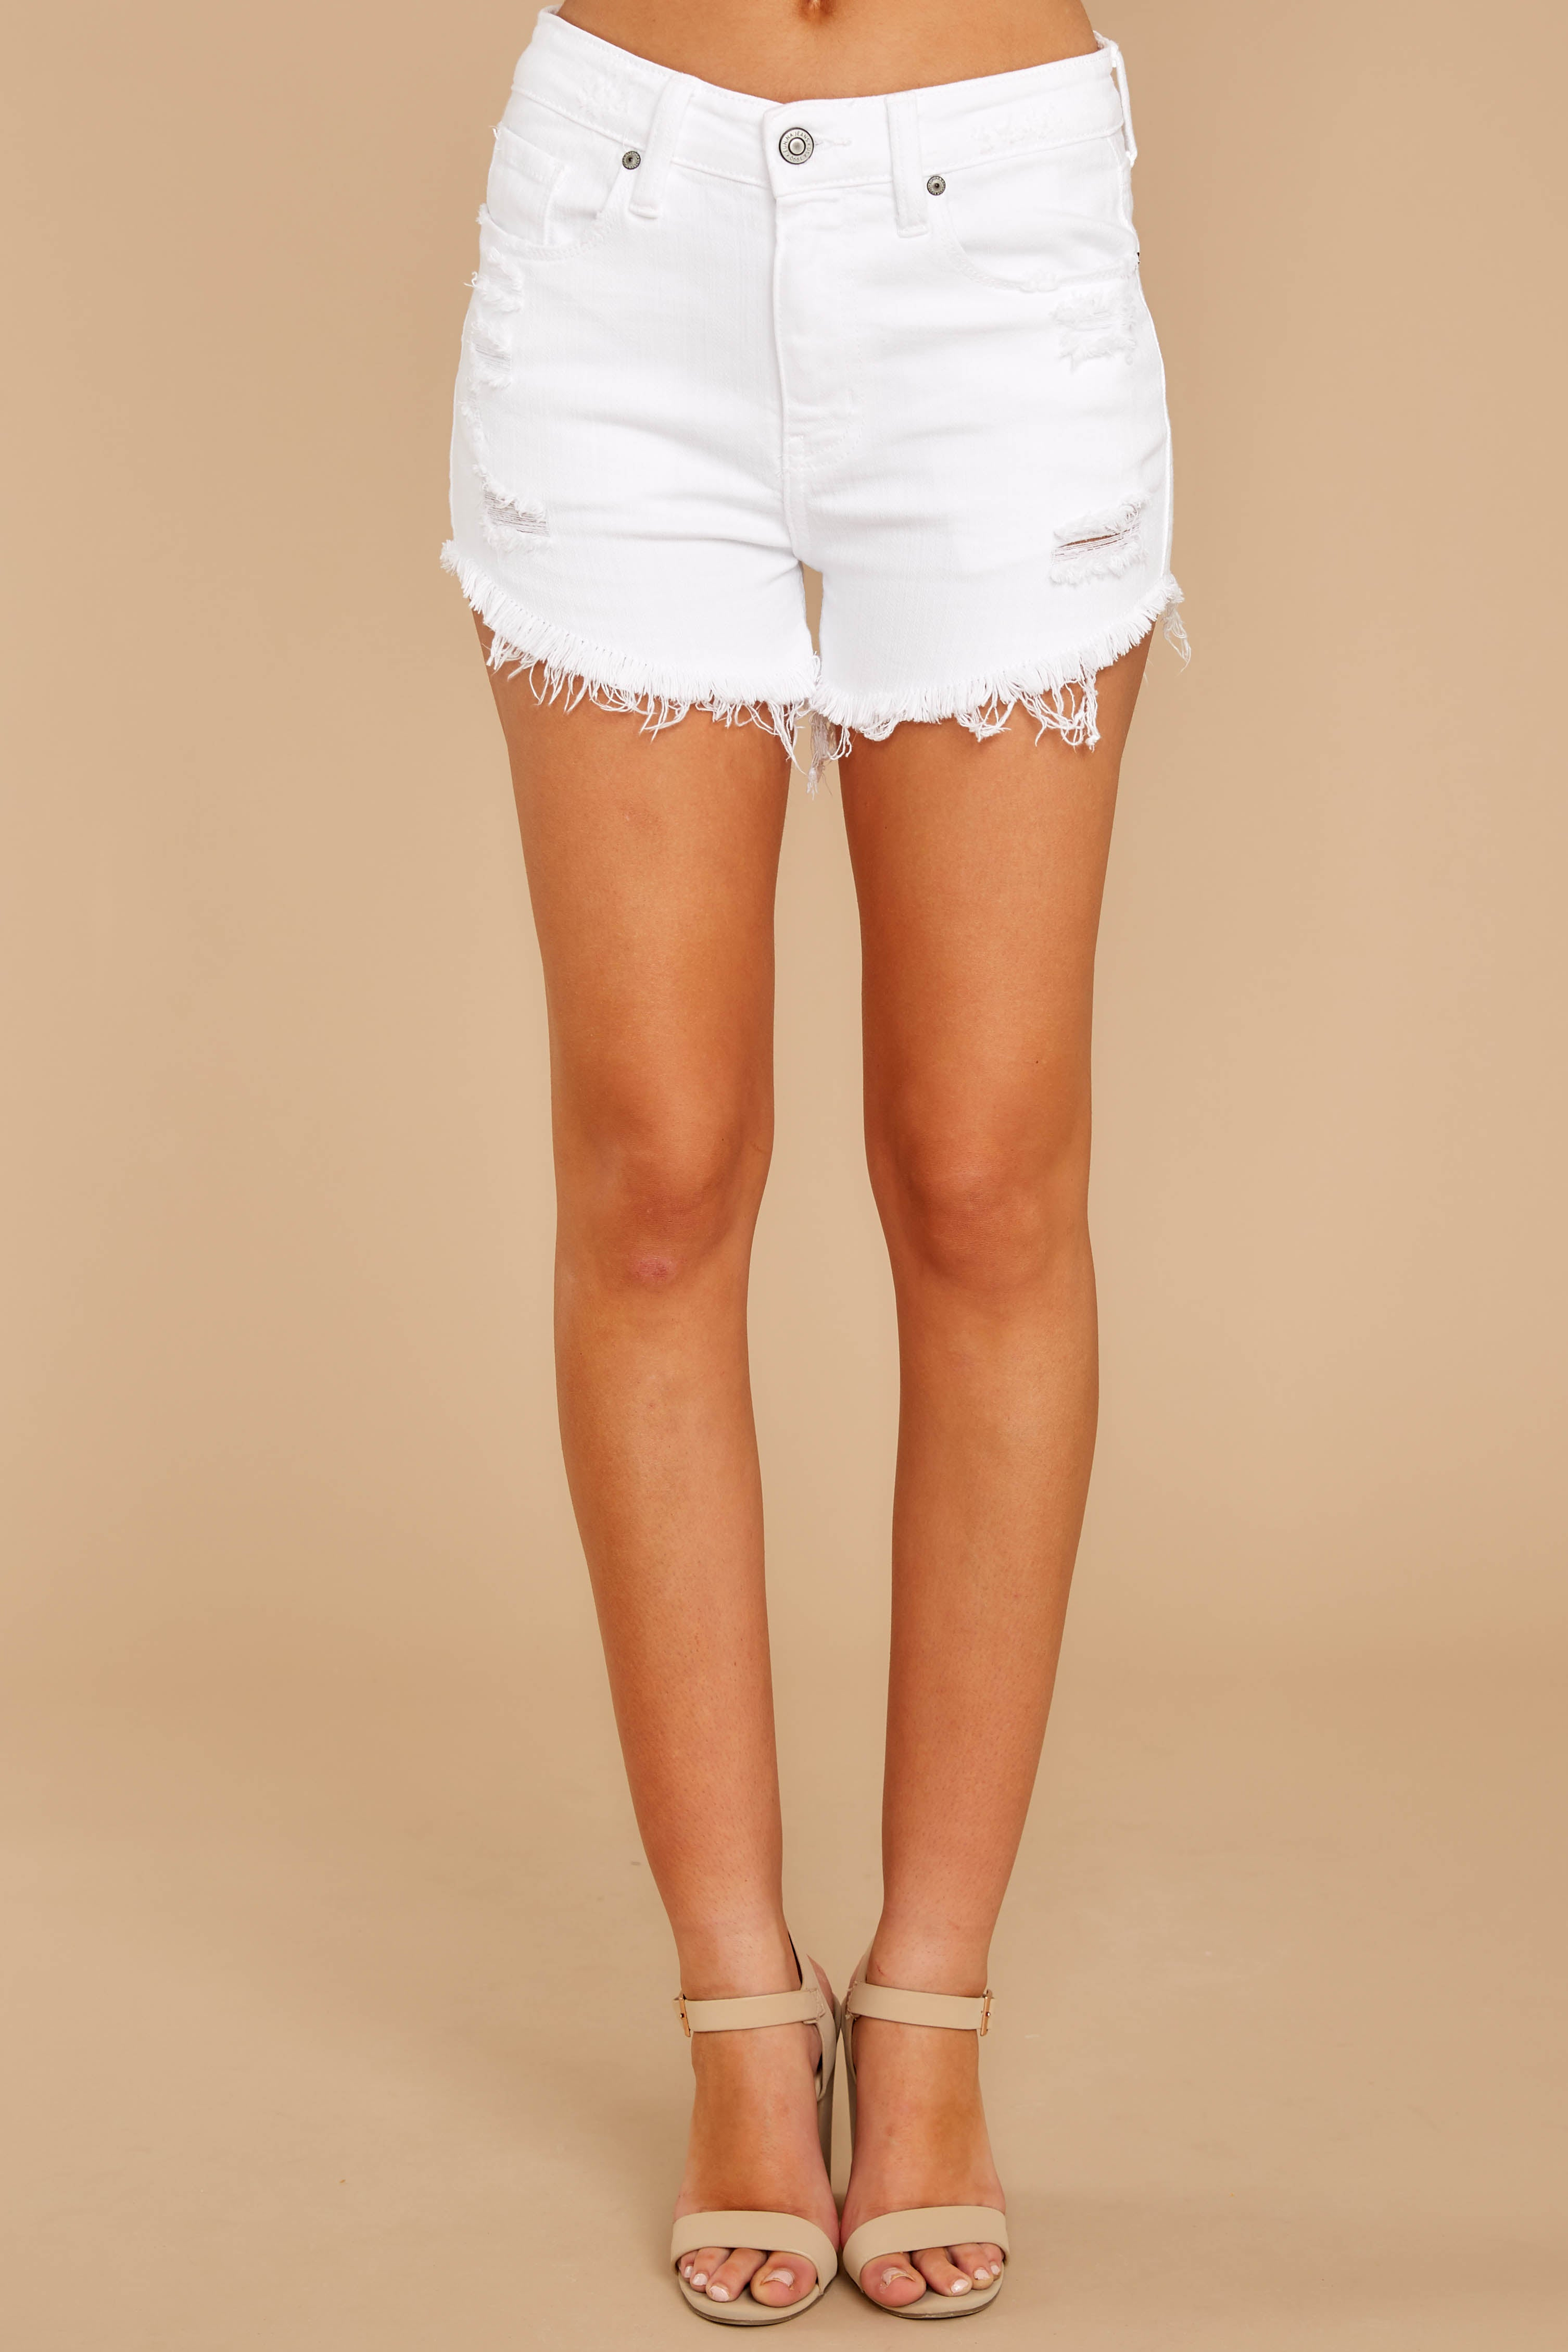 2 Admit To You White Distressed Denim Shorts at reddressboutique.com